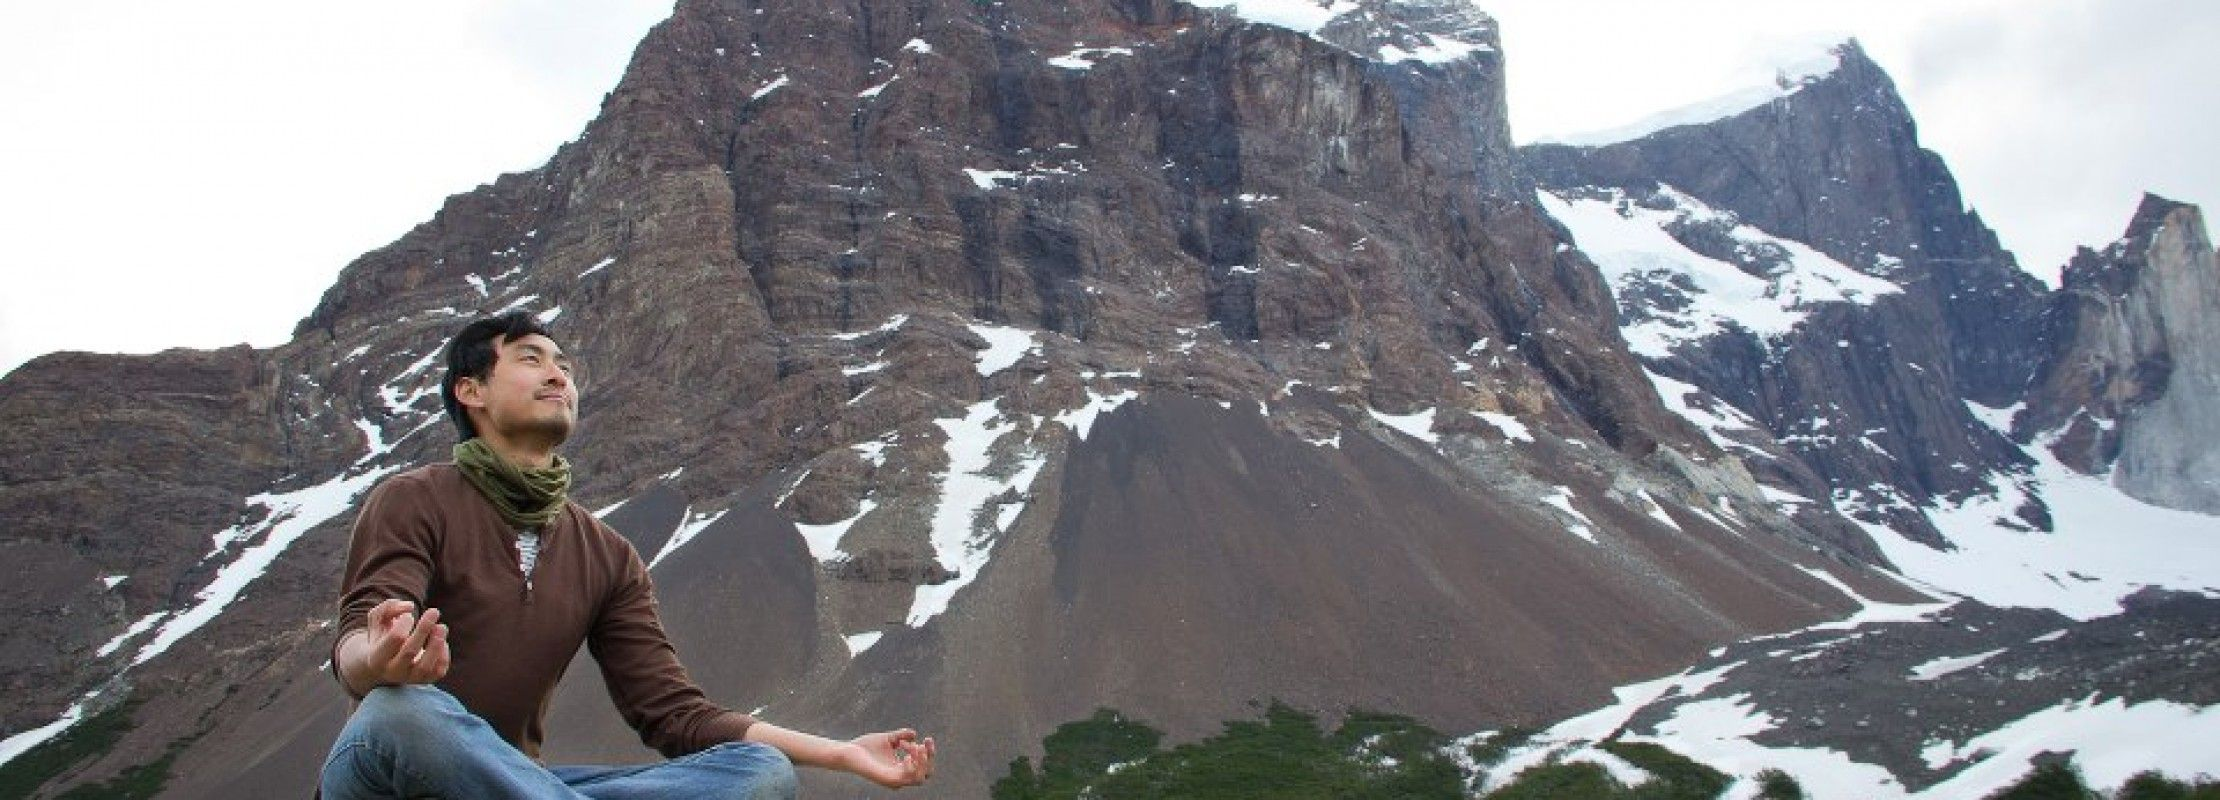 Why Everyone Should Consider Traveling Solo - Adventure Seeker